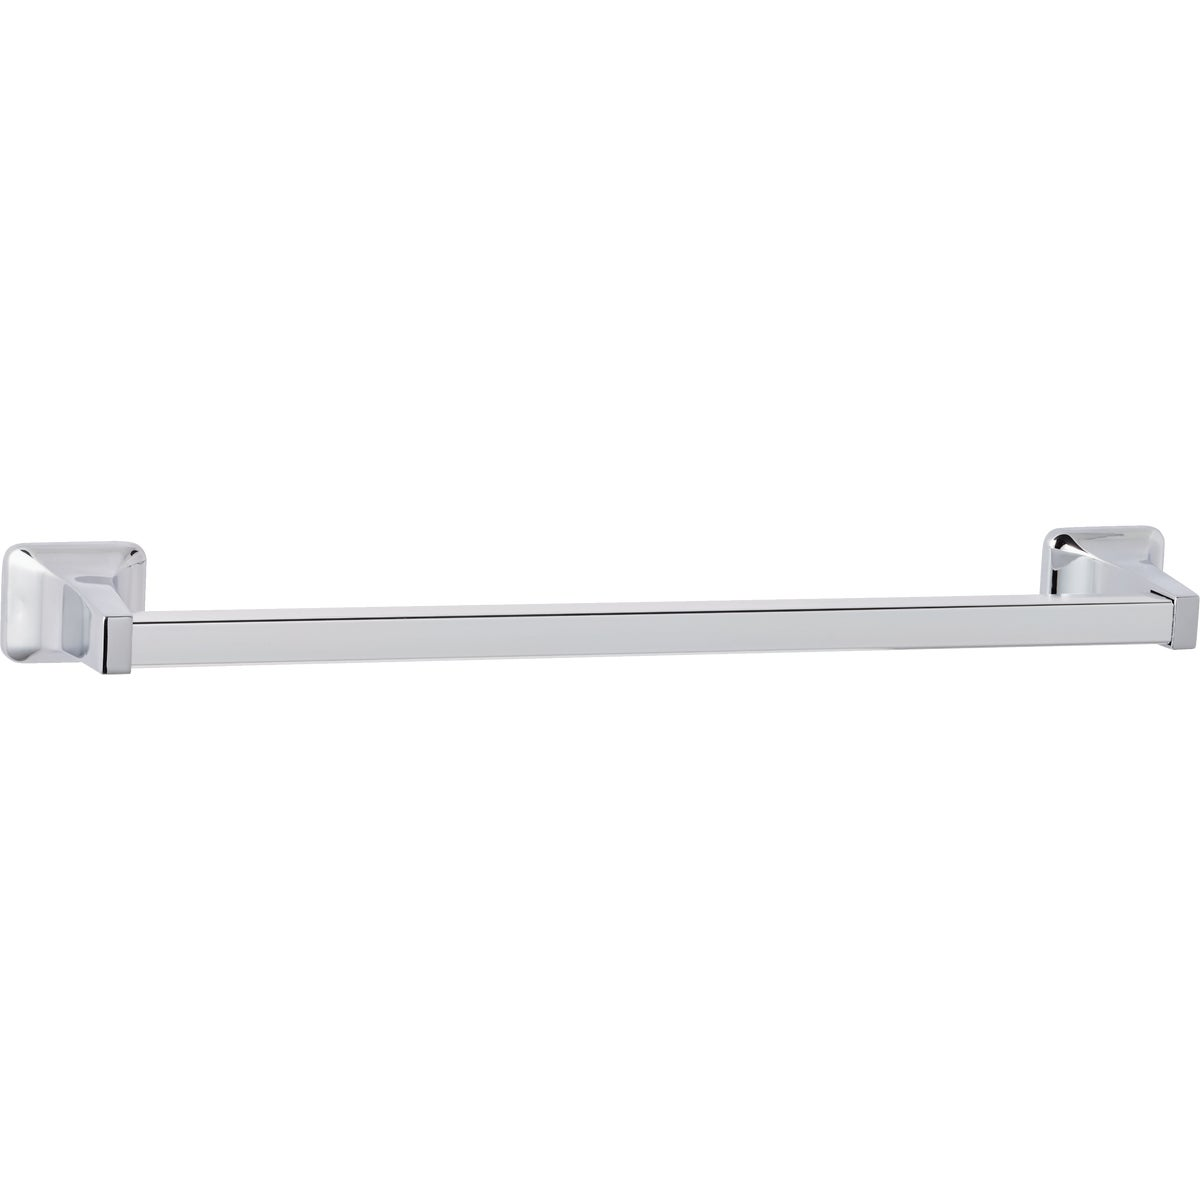 "18"" CHROME TOWEL BAR - 409221 by Do it Best"